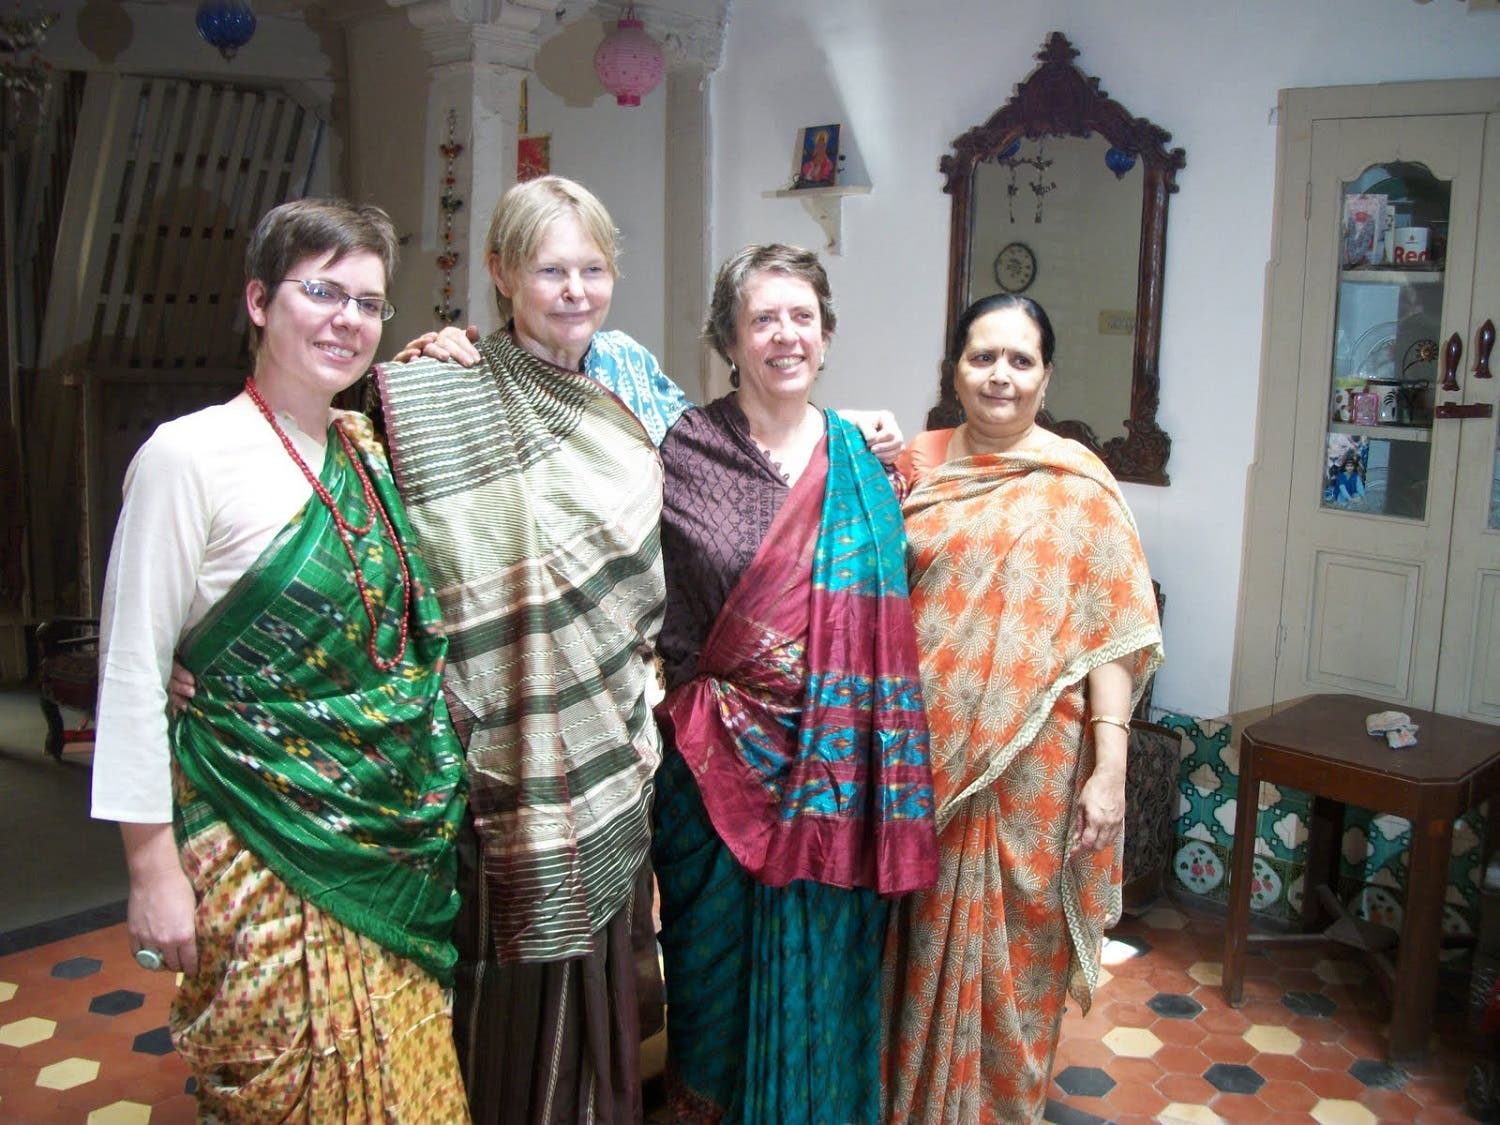 Foreign guests learn to wear the Indian sari at Jagdeep Mehta's Heritage House. (Supplied)